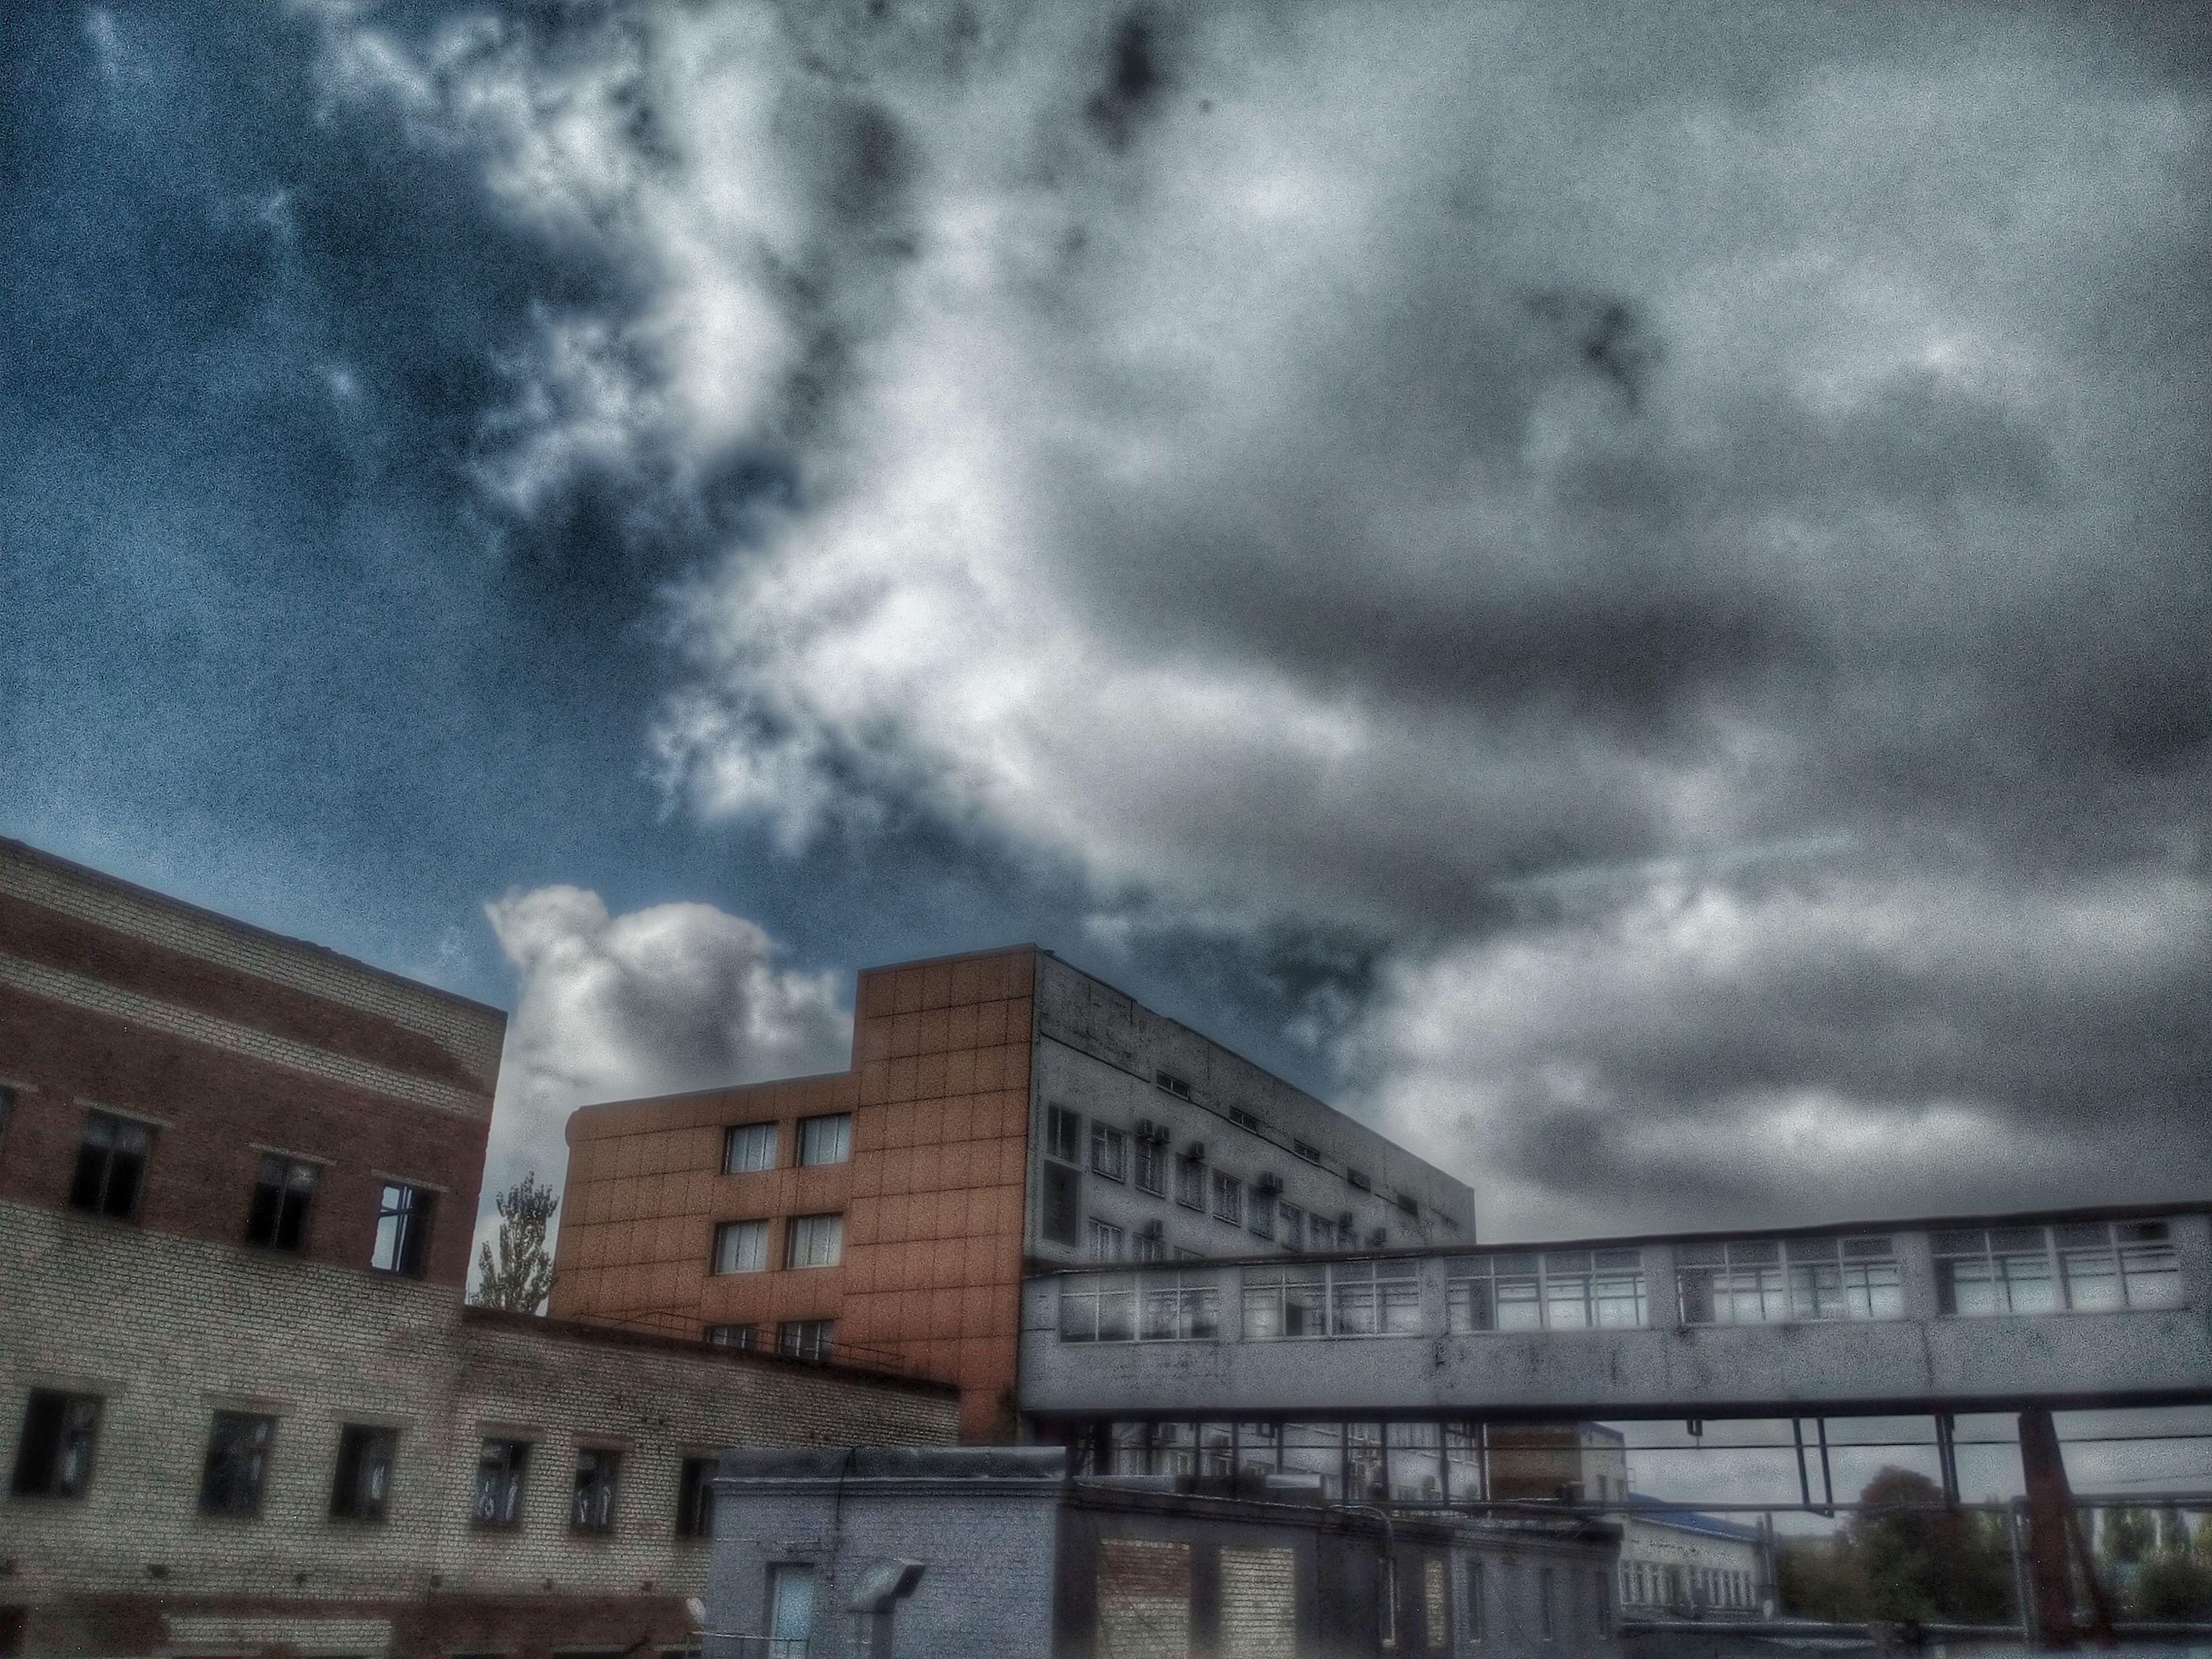 architecture, built structure, building exterior, low angle view, cloud - sky, sky, city, cloud, building, high section, cloudy, day, outdoors, city life, storm cloud, building story, cloudscape, tall - high, no people, office building, residential district, dramatic sky, architectural feature